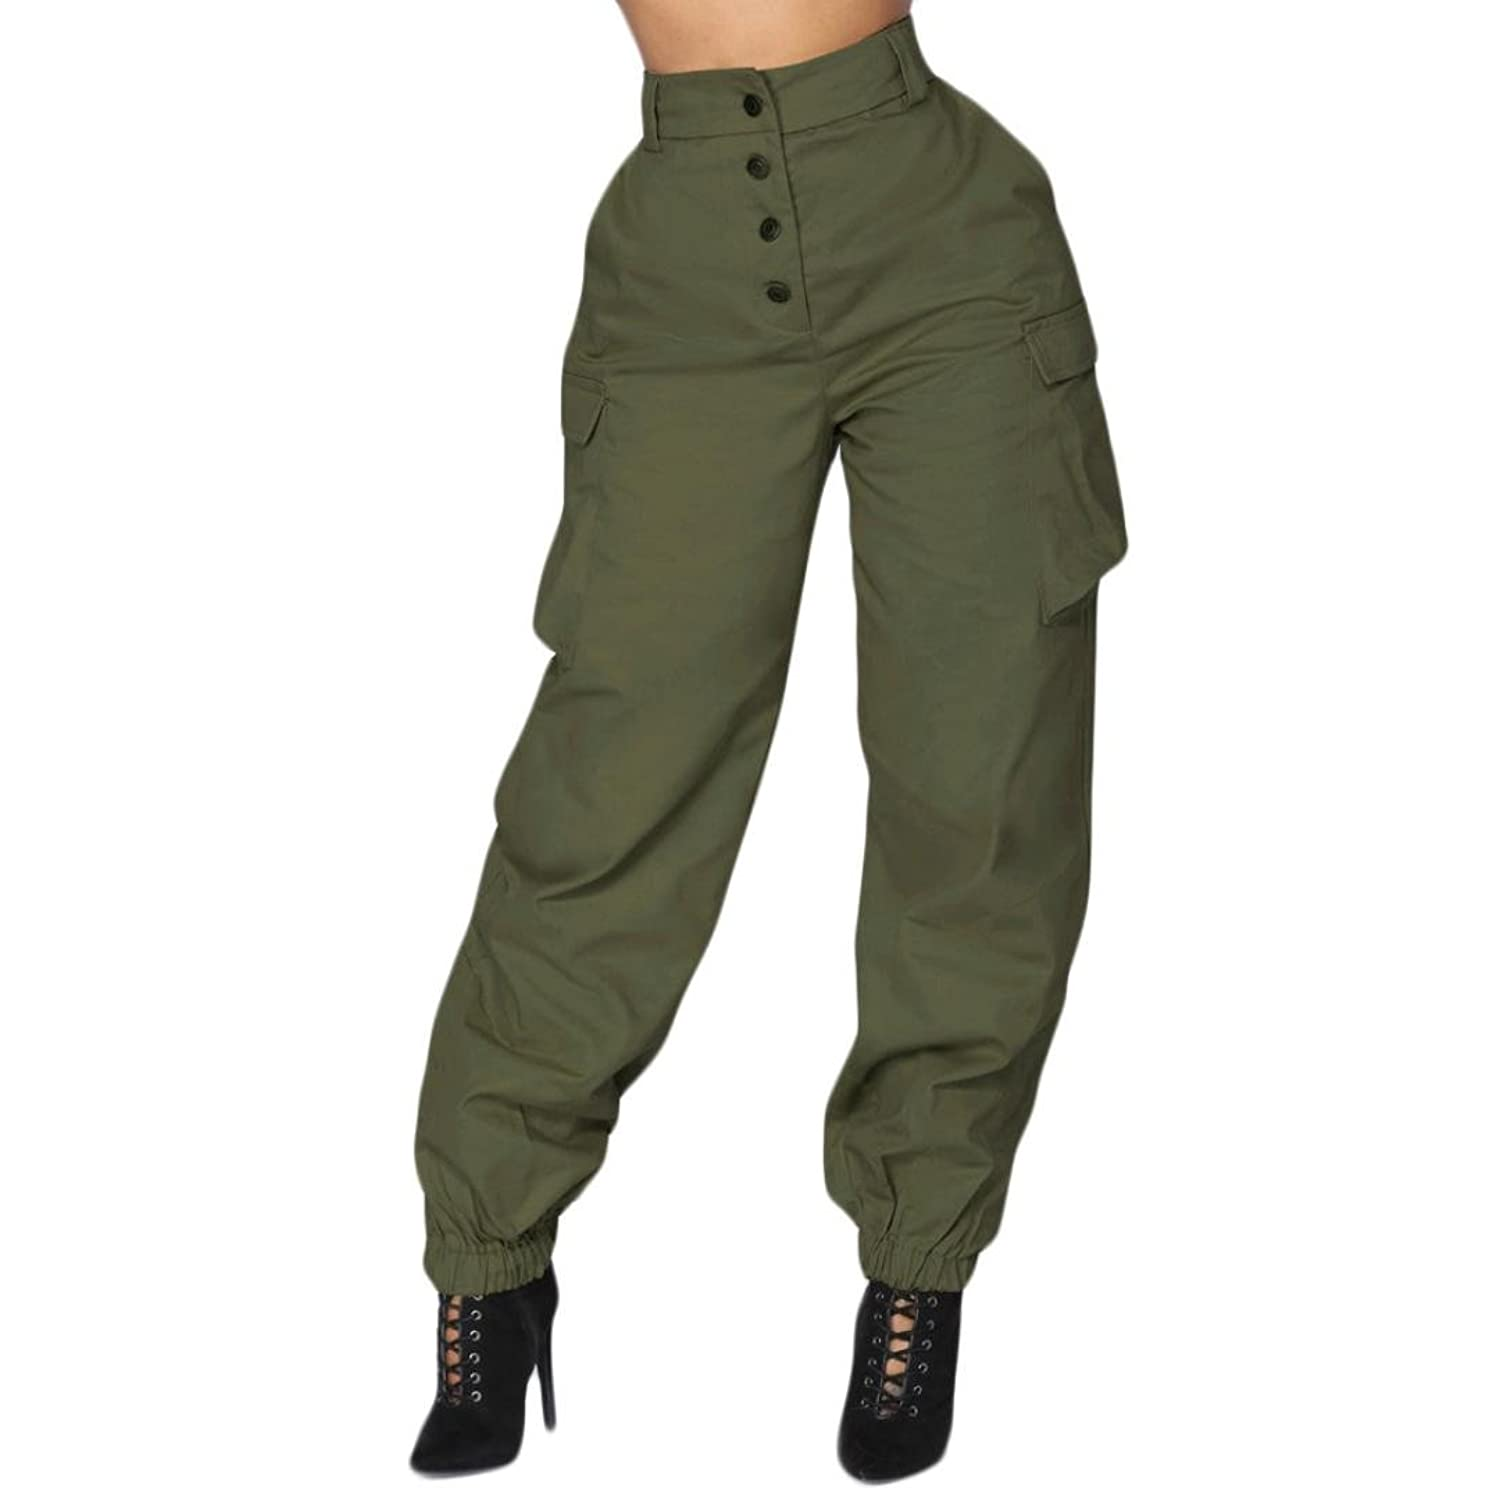 d23c7763704e2a ❊Material:Polyester Fiber♥♥Woman ease in to comfort fit barely bootcut plus  size pant women\'s elastic waist jersey culottes pants women\'s layered wide  ...